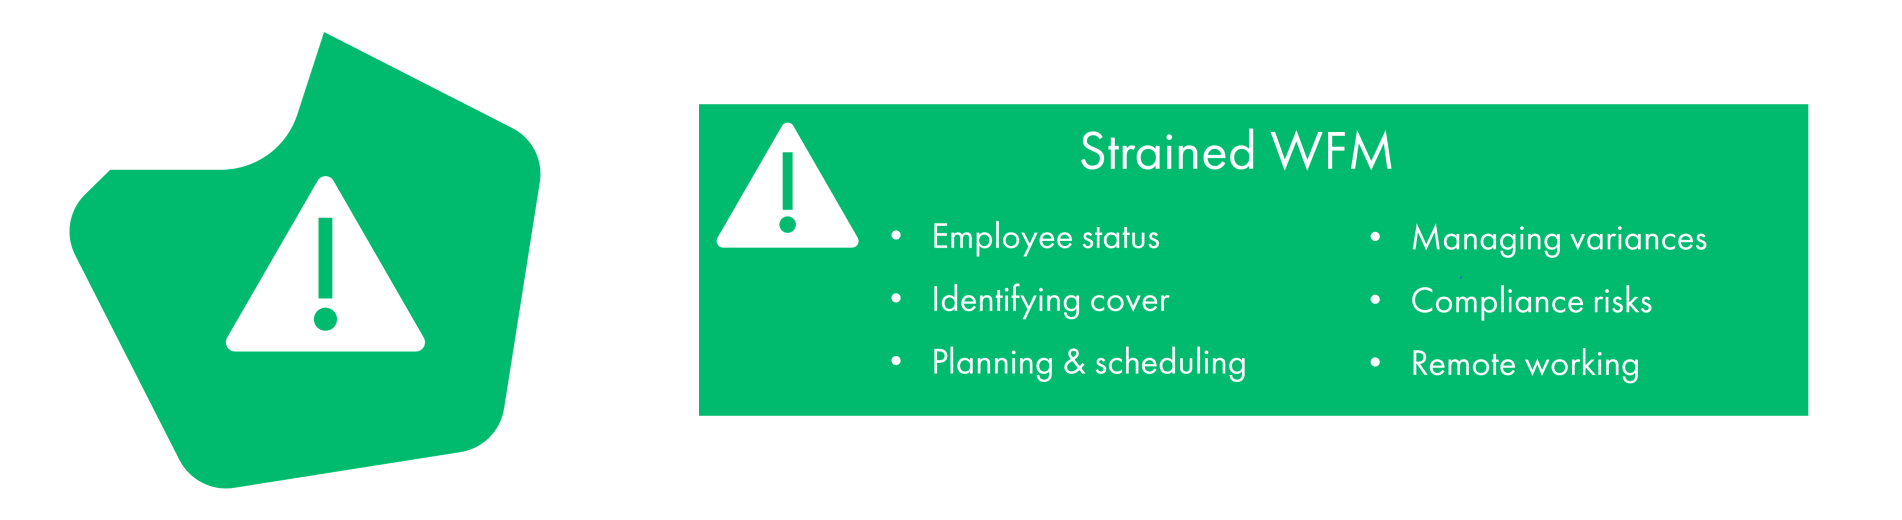 Future of Shift Work - Strained workforce management